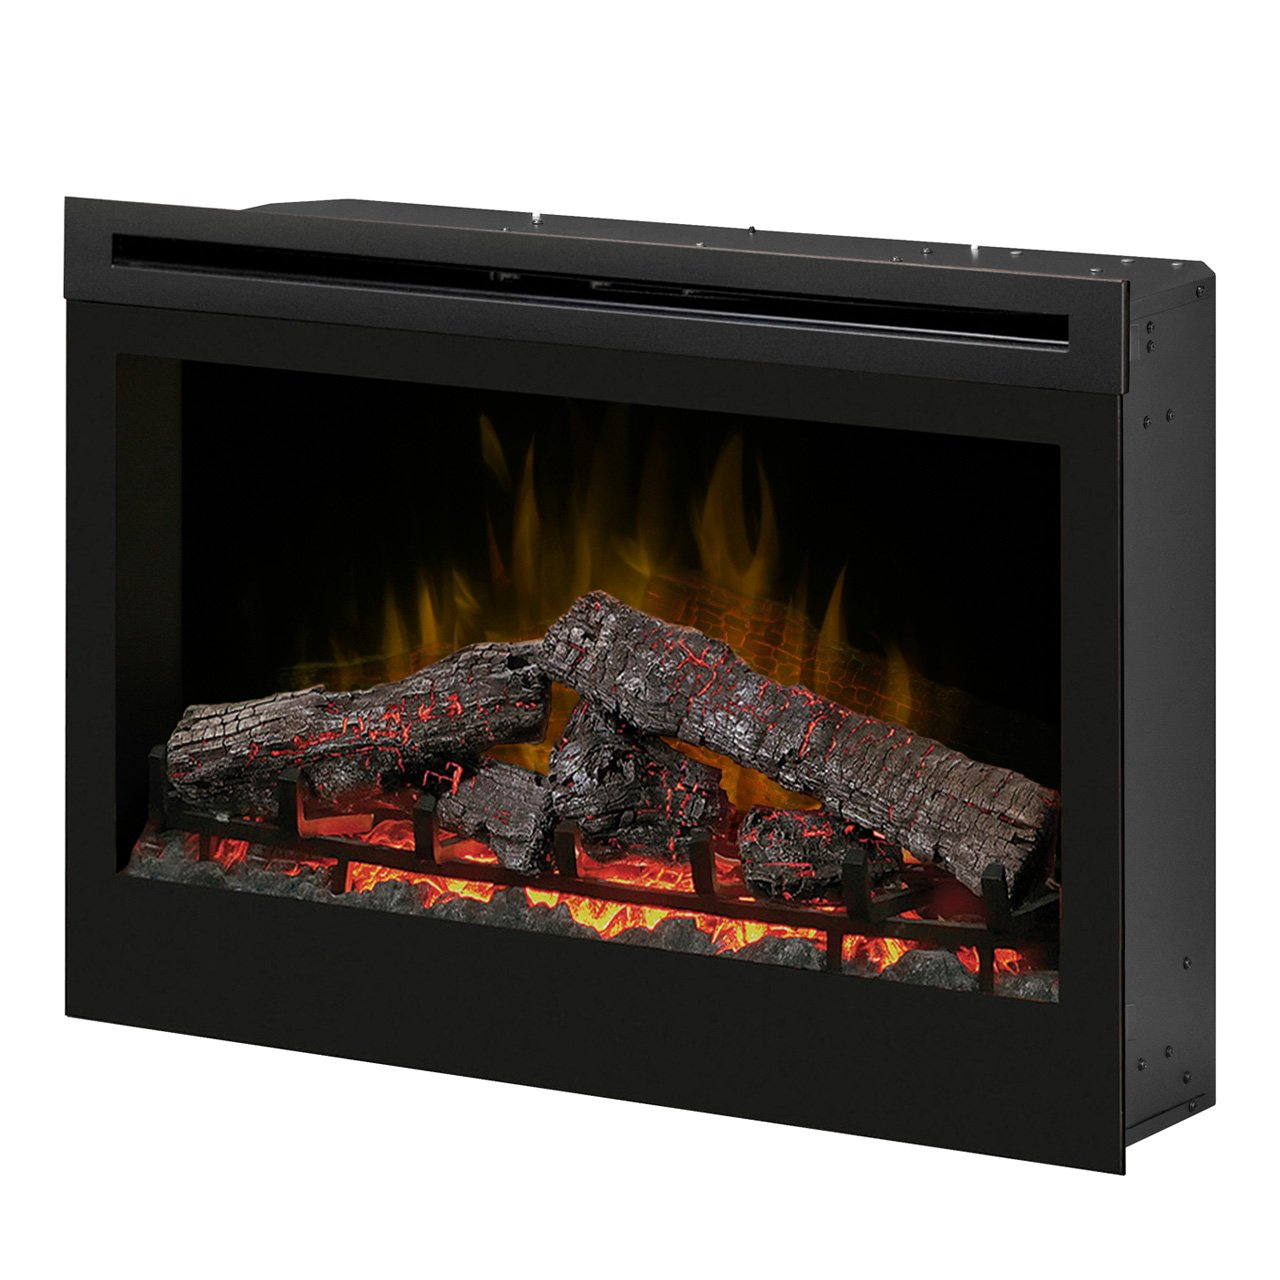 Alexa Fireplace Inspirational Dimplex Df3033st 33 Inch Self Trimming Electric Fireplace Insert